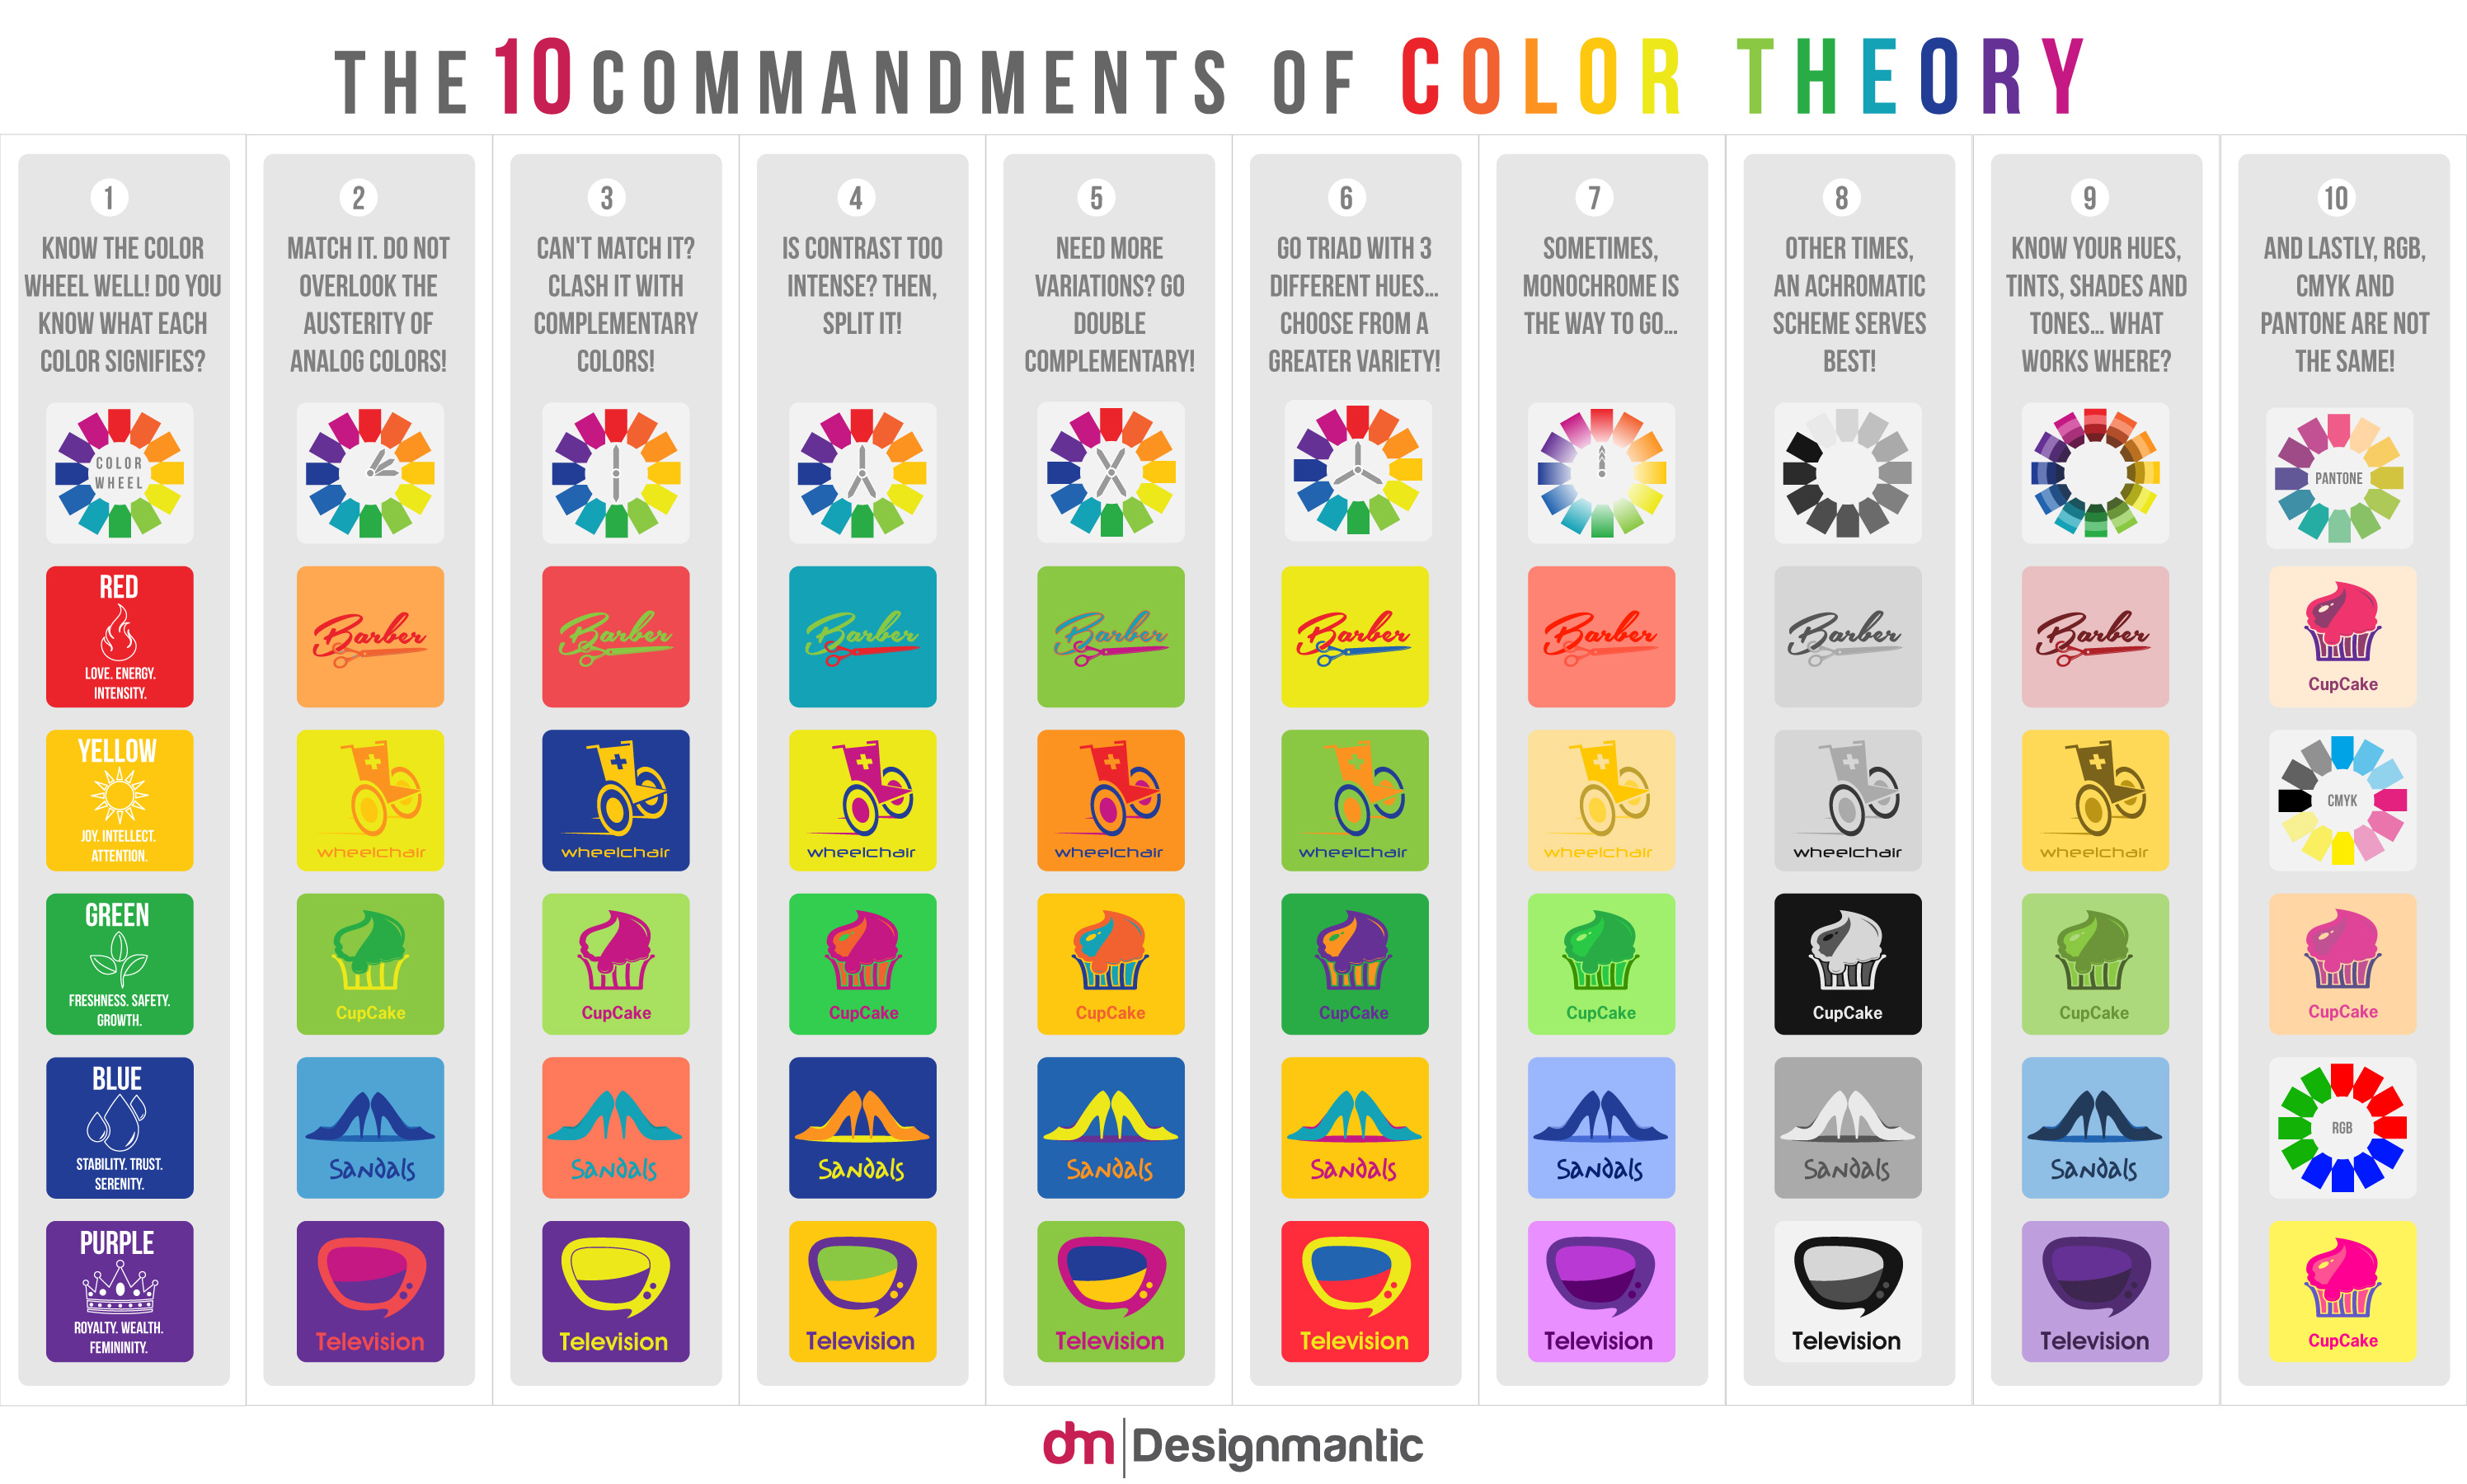 The 10 Commandments of Color Theory chart